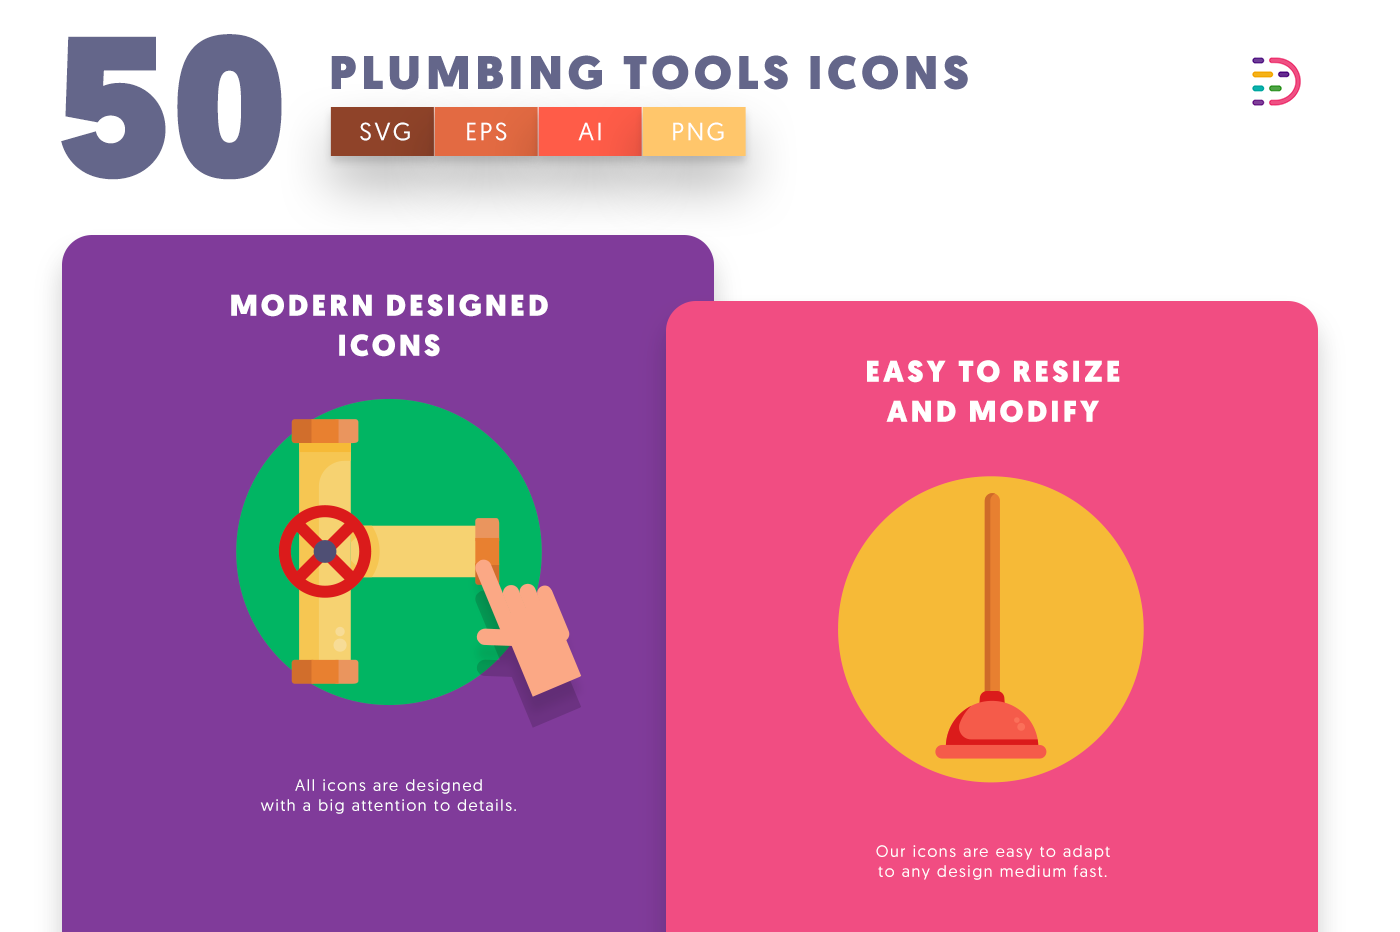 Plumbing Tools icons png/svg/eps